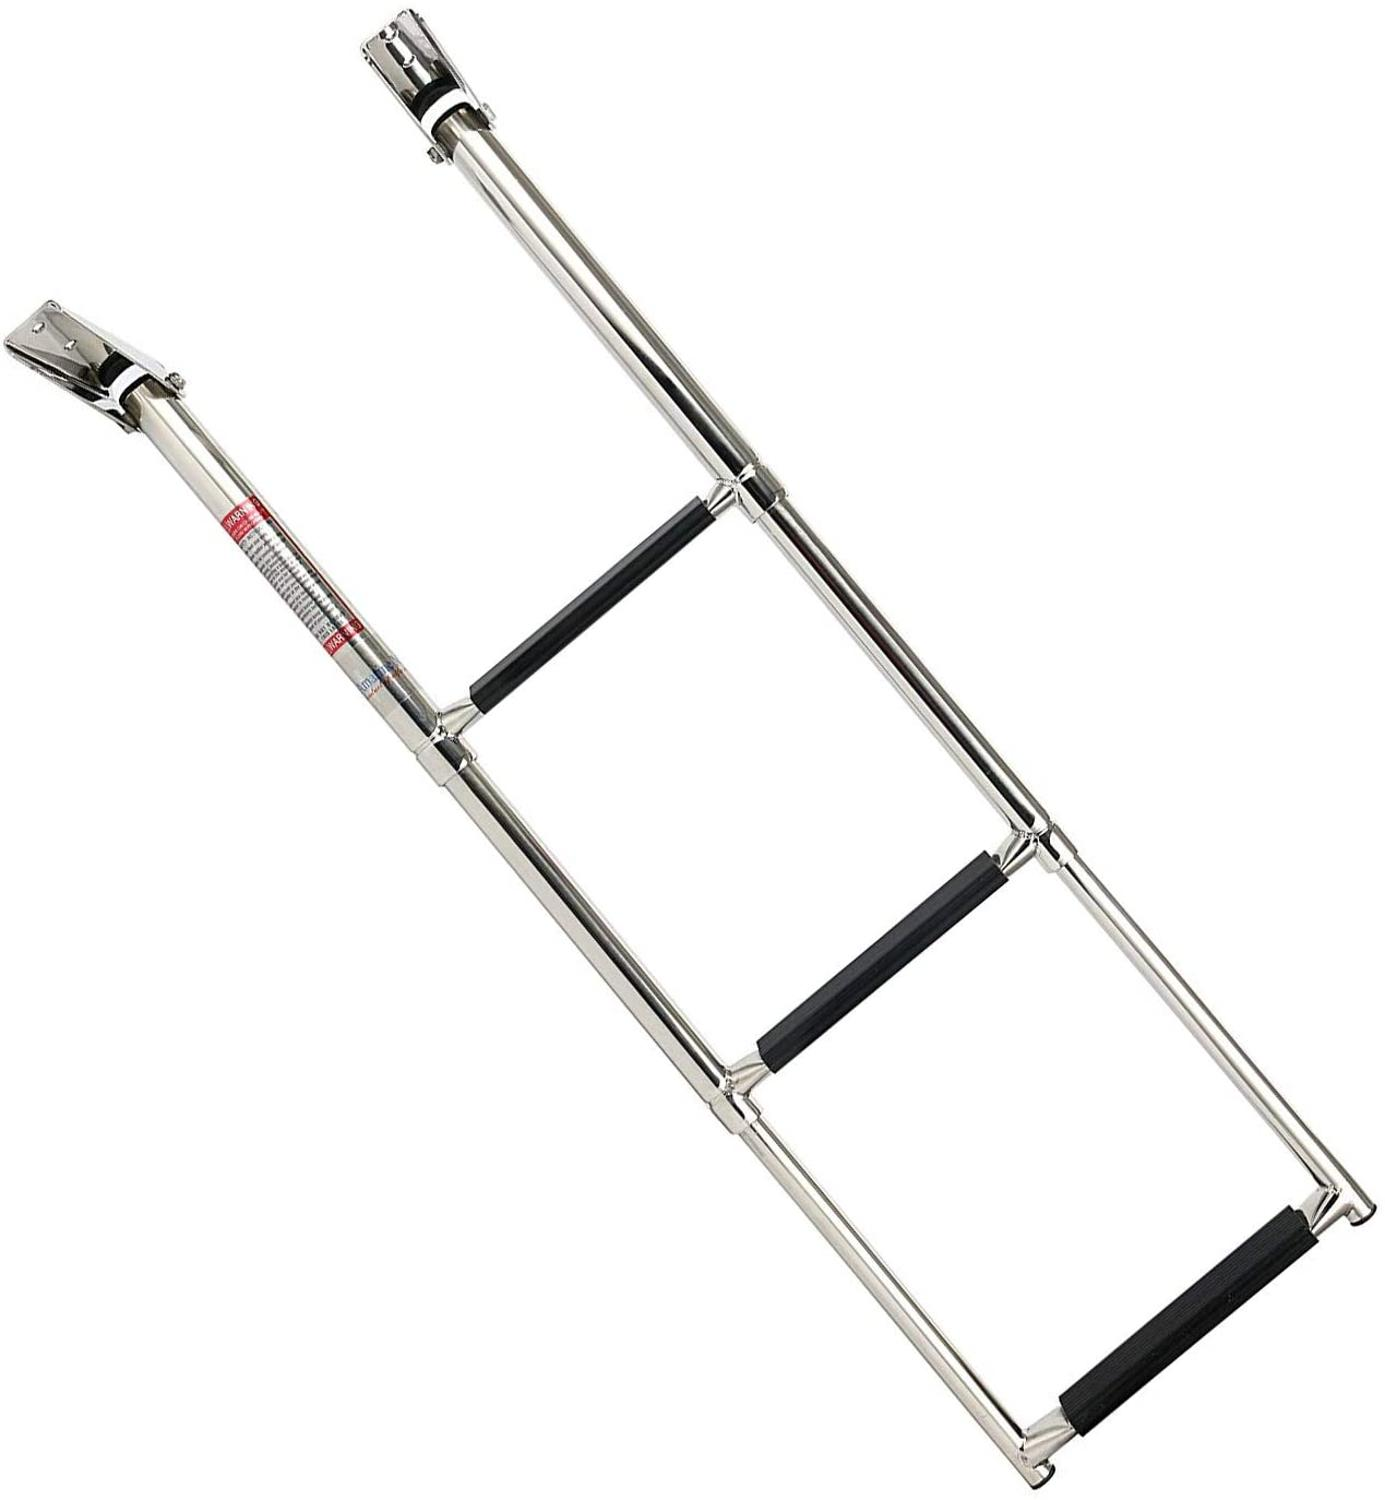 Boat Accessories Marine 3 Step Stainless Steel Telescopic Boat Ladder Swim Step